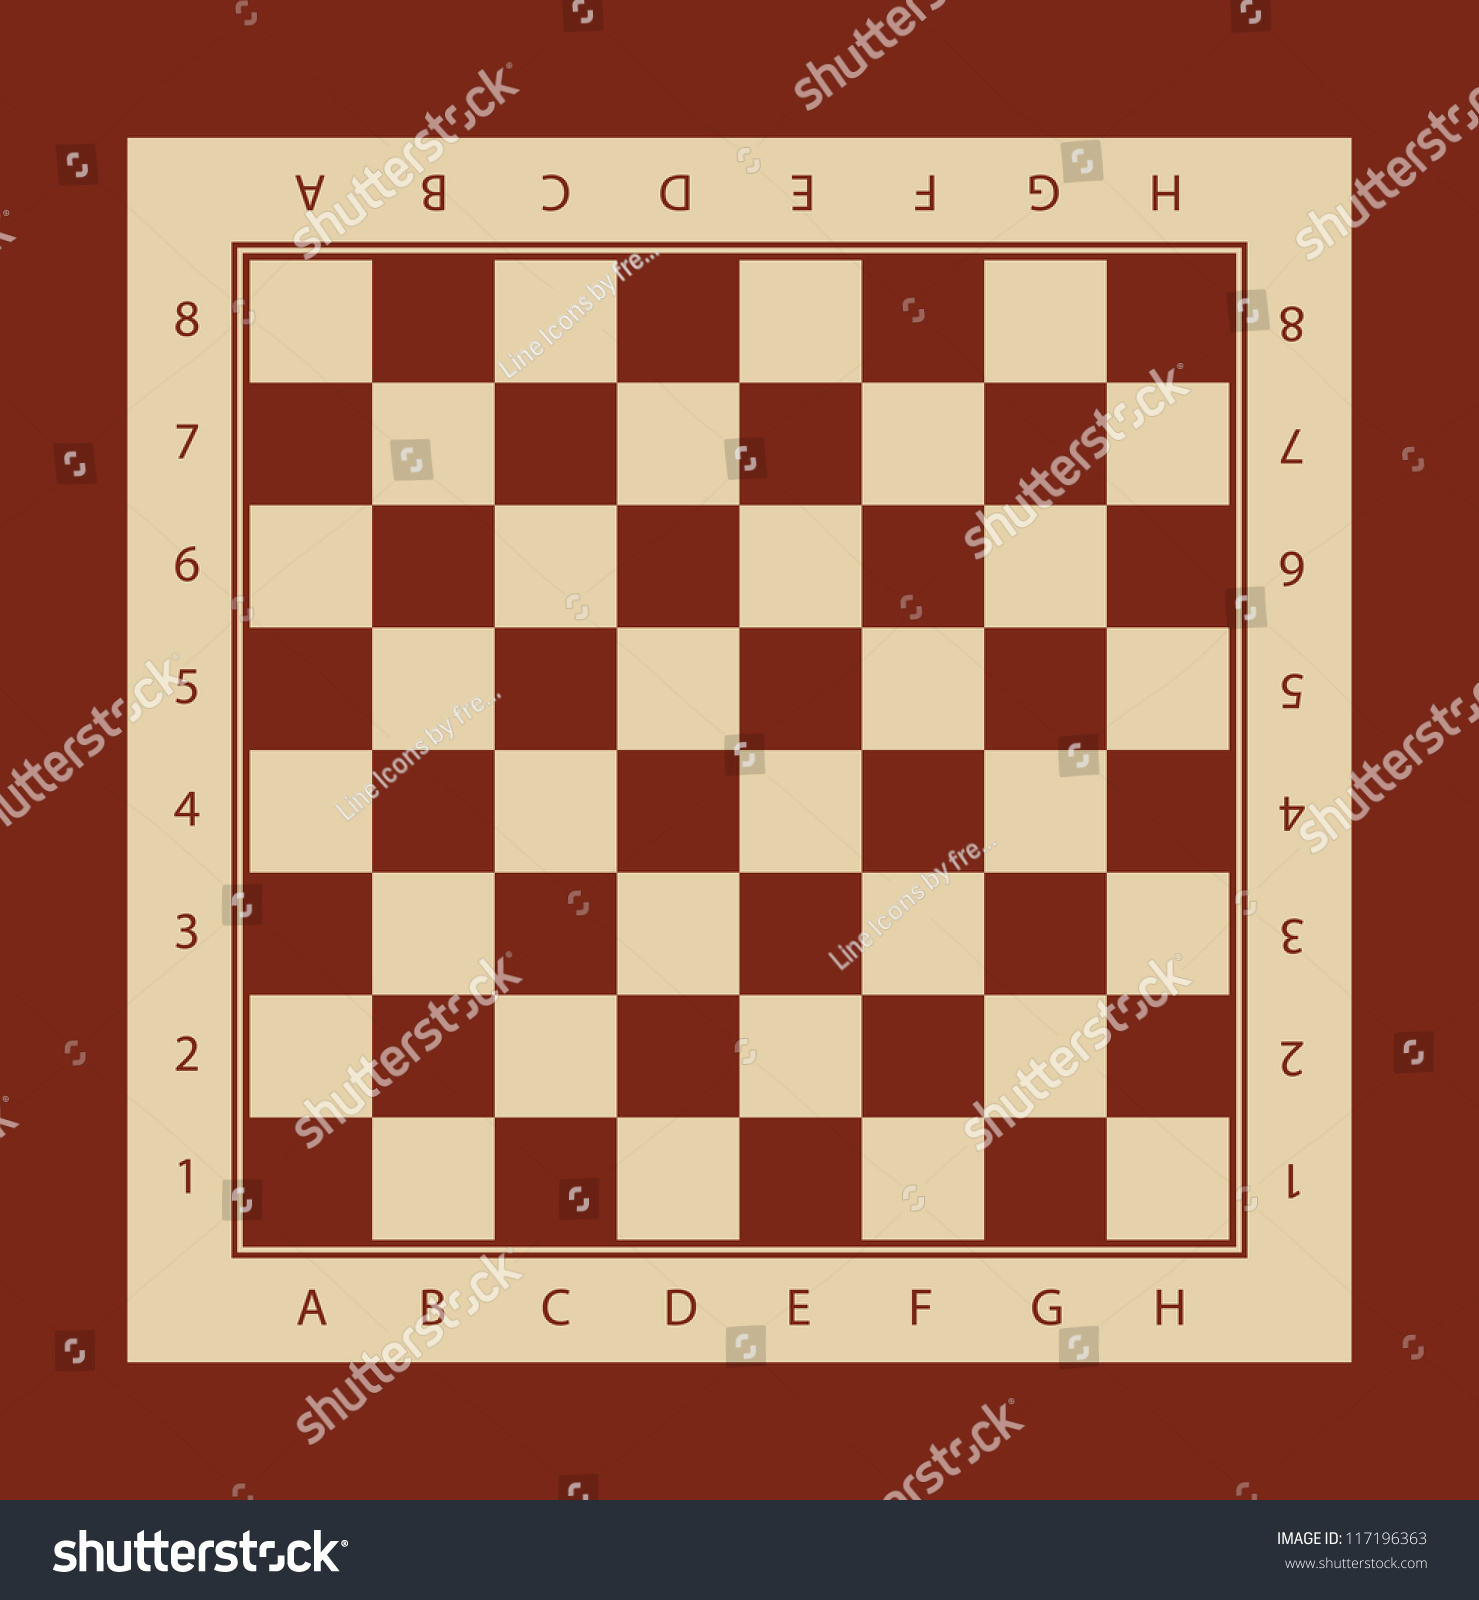 This is a photo of Dynamite Printable Chess Board